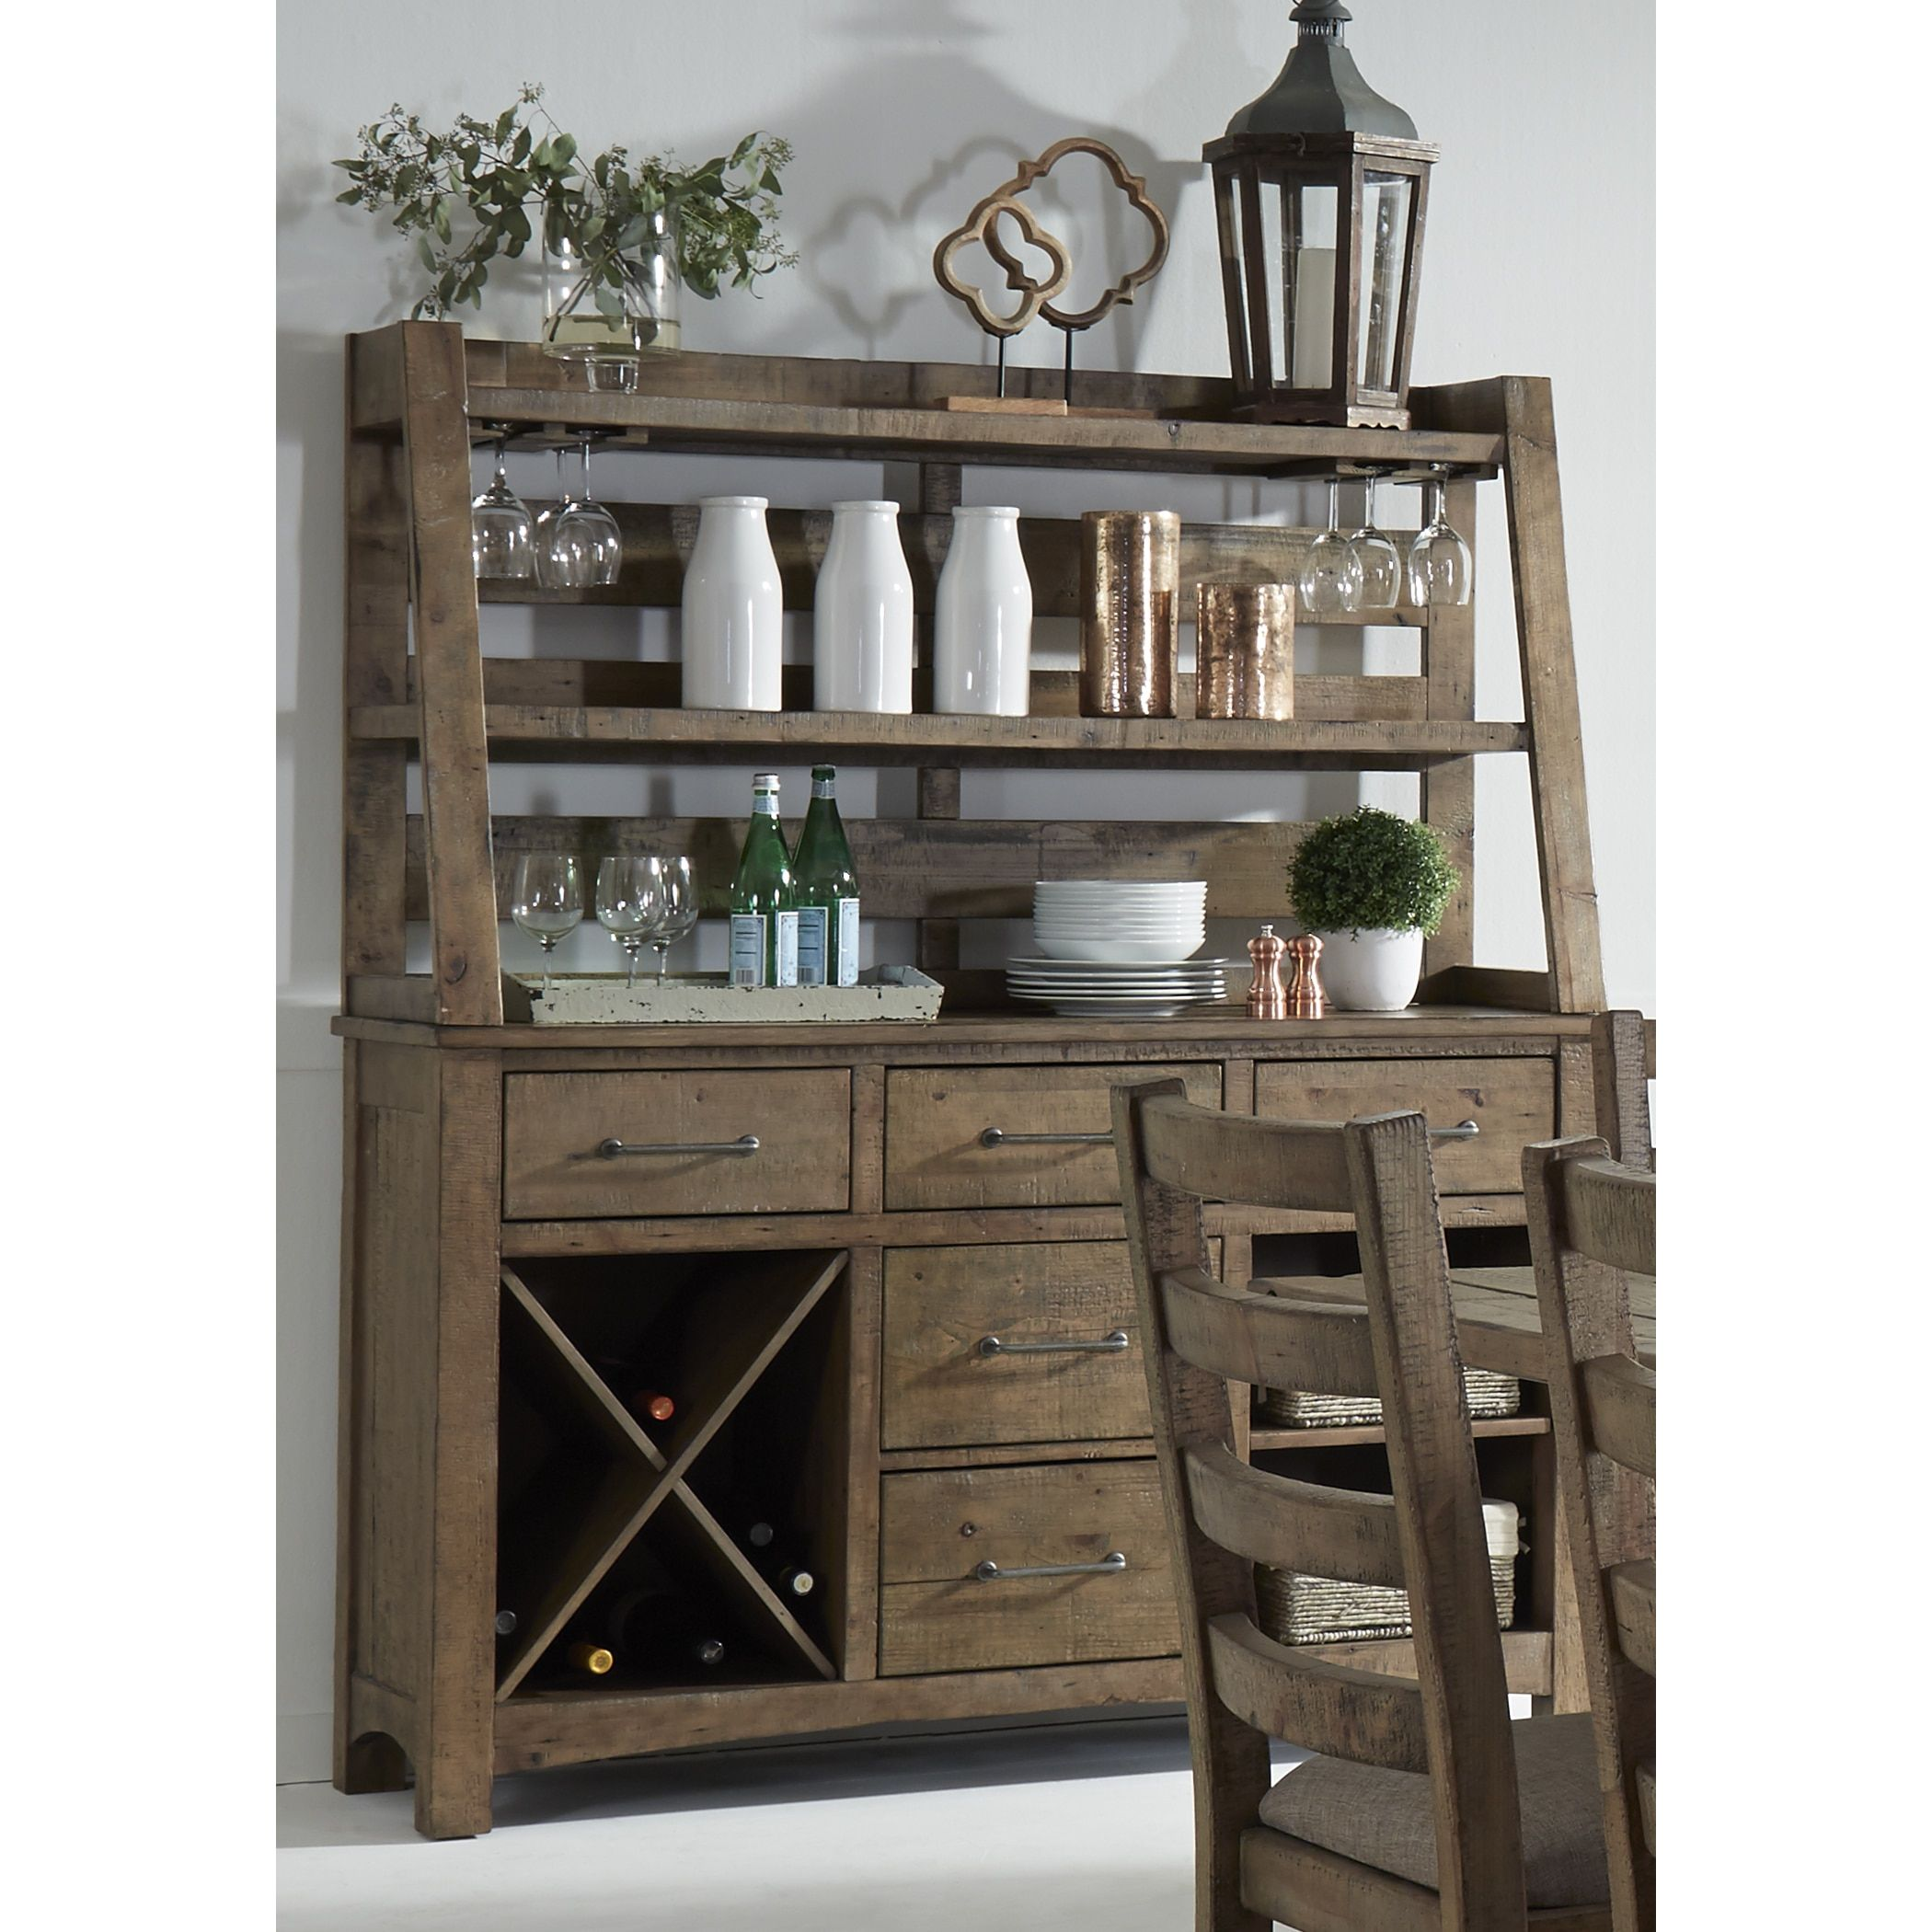 Buffets Sideboards And China Cabinets Are Ideal For Displaying Storing Fine Linens Or Your Favorite Keepsakes